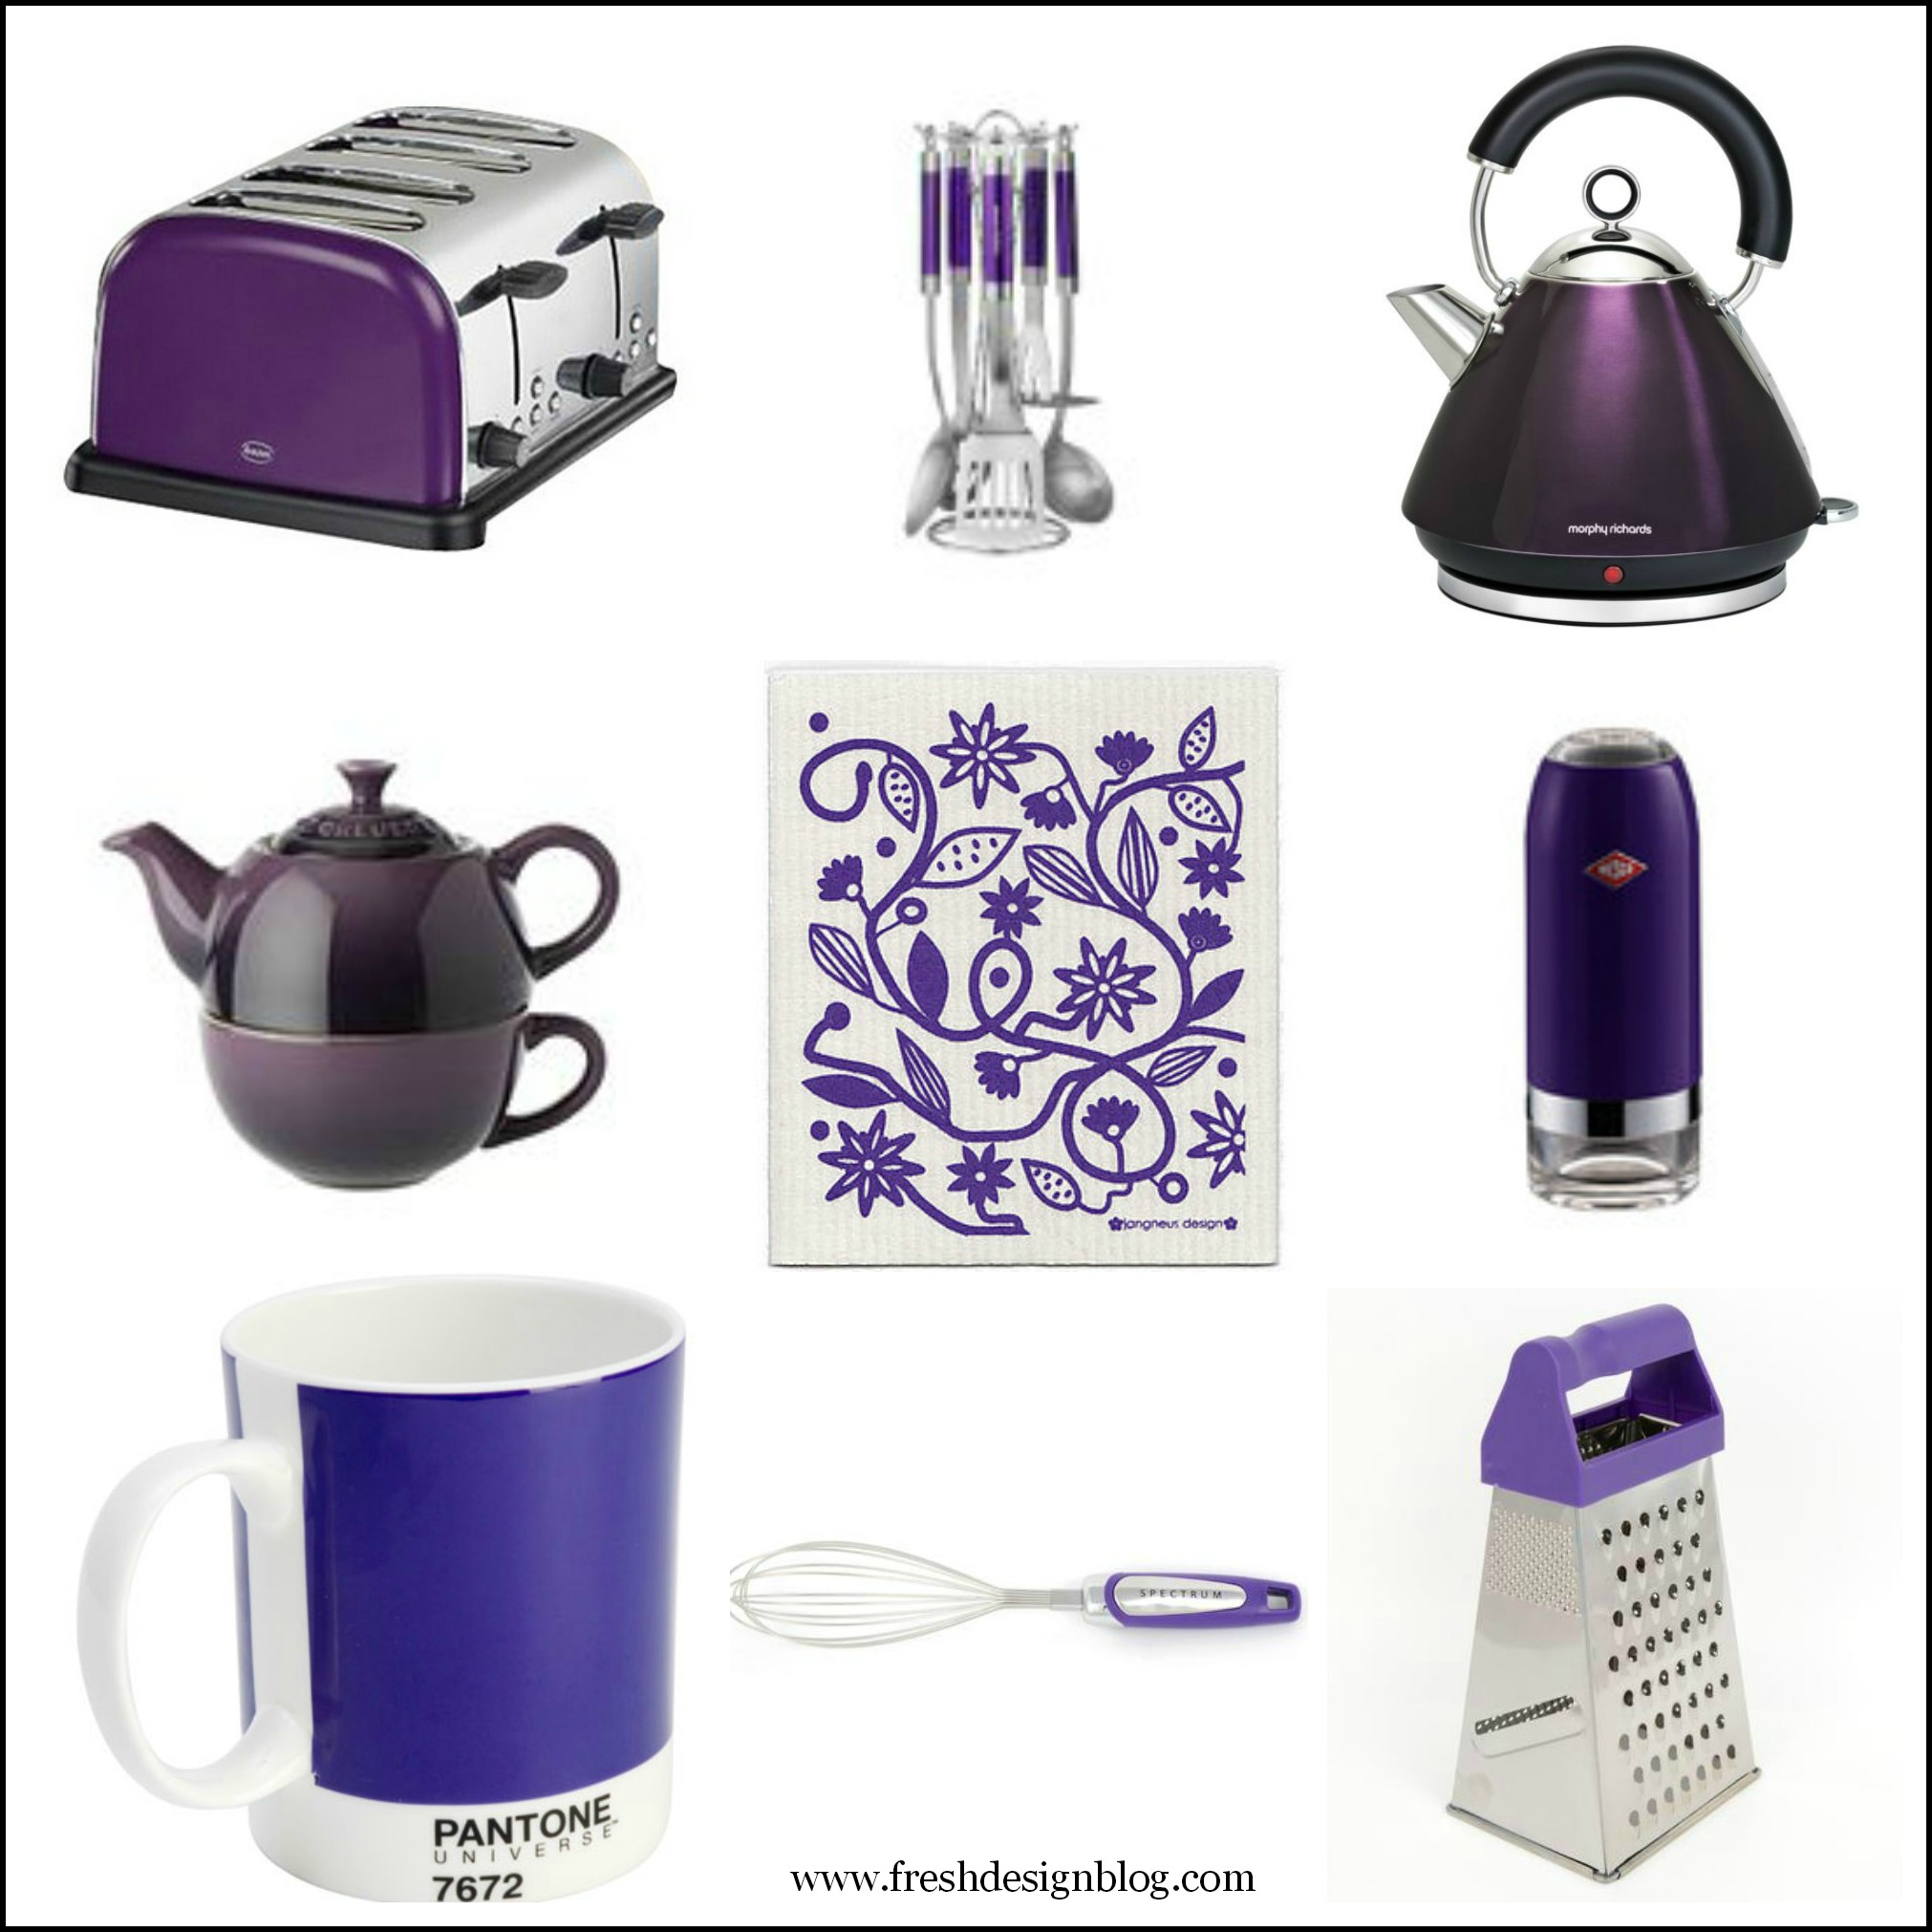 Kitchen kit: Purple themed kitchen accessories | Fresh Design Blog